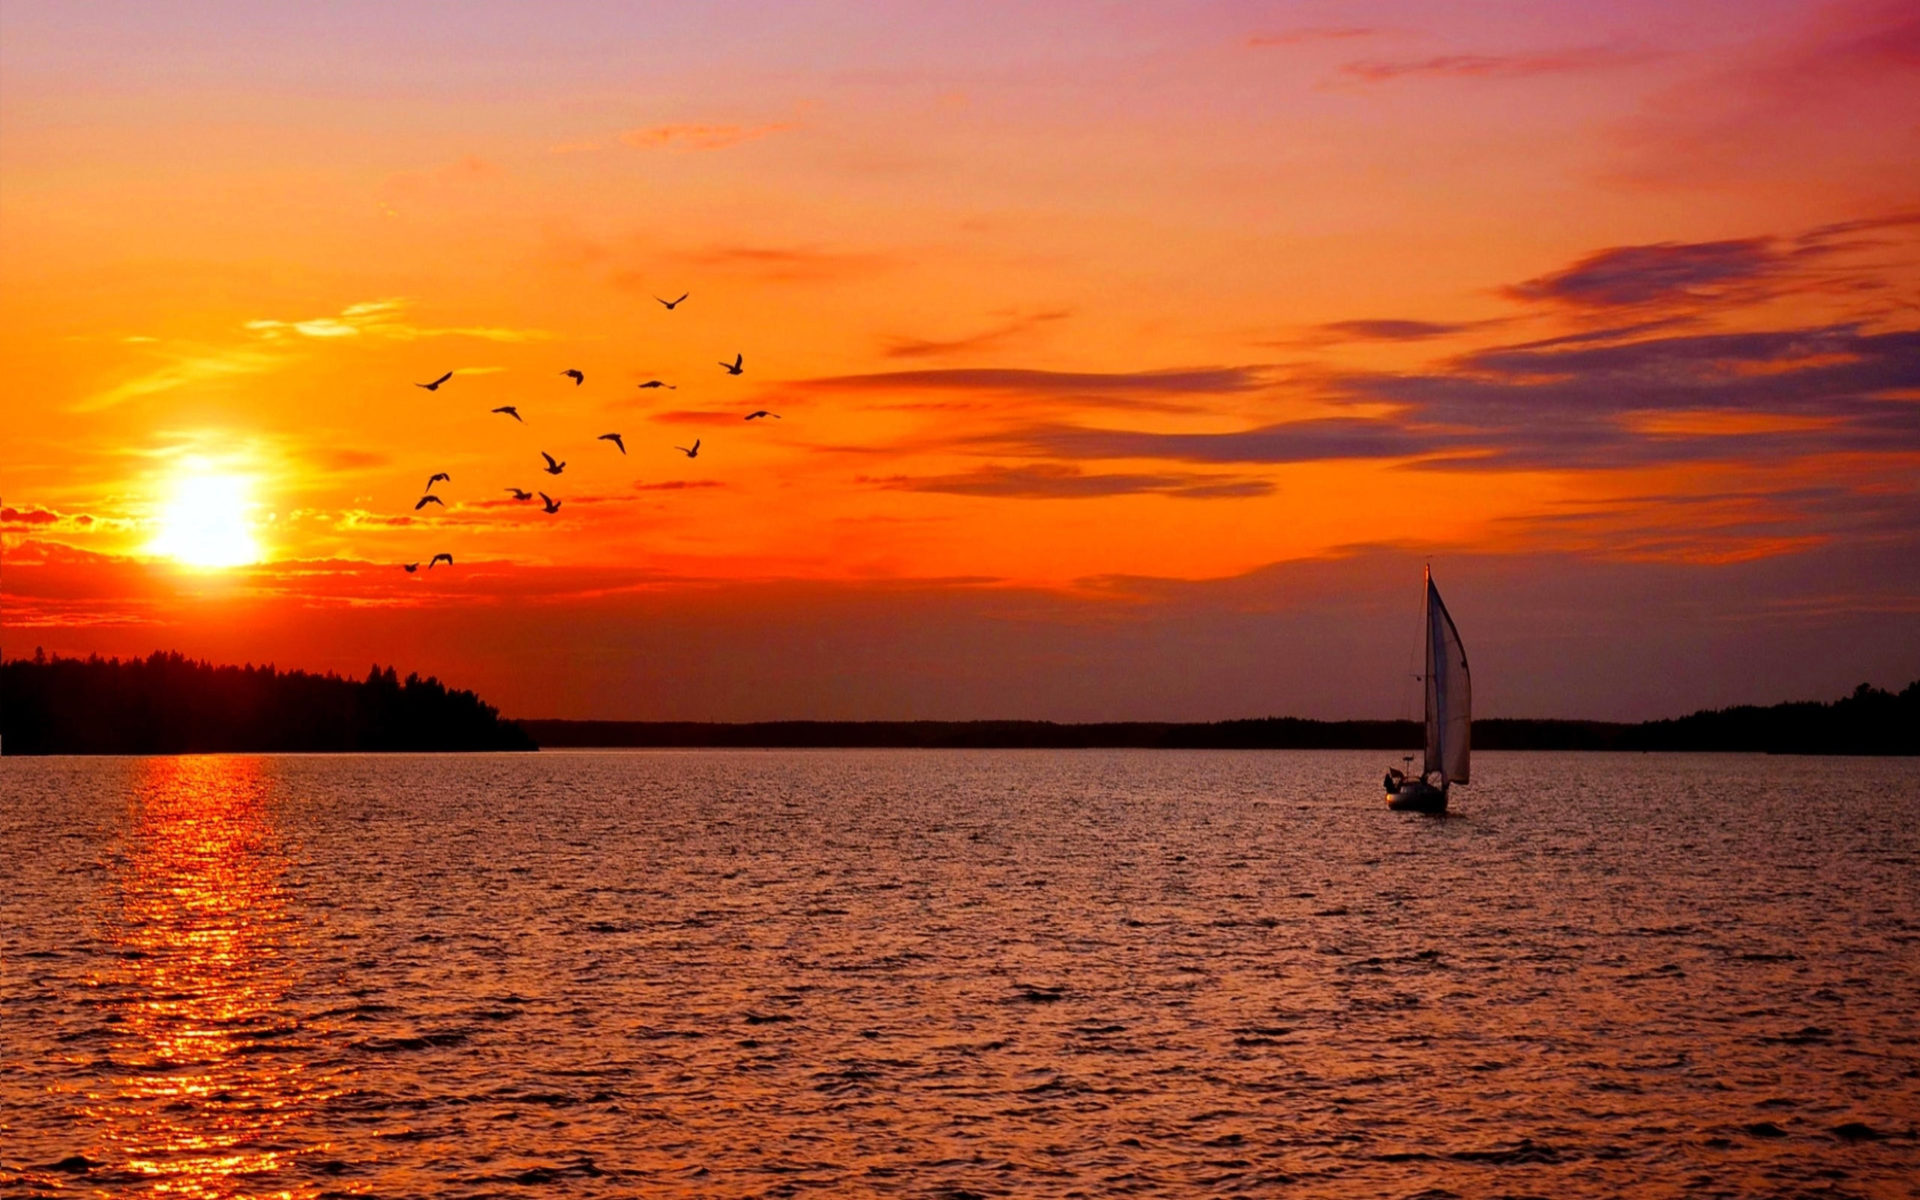 Quotes Lock Screen Wallpaper Sunset Sailing Birds Sweden Boat Nature Ultra 2560x1600 Hd